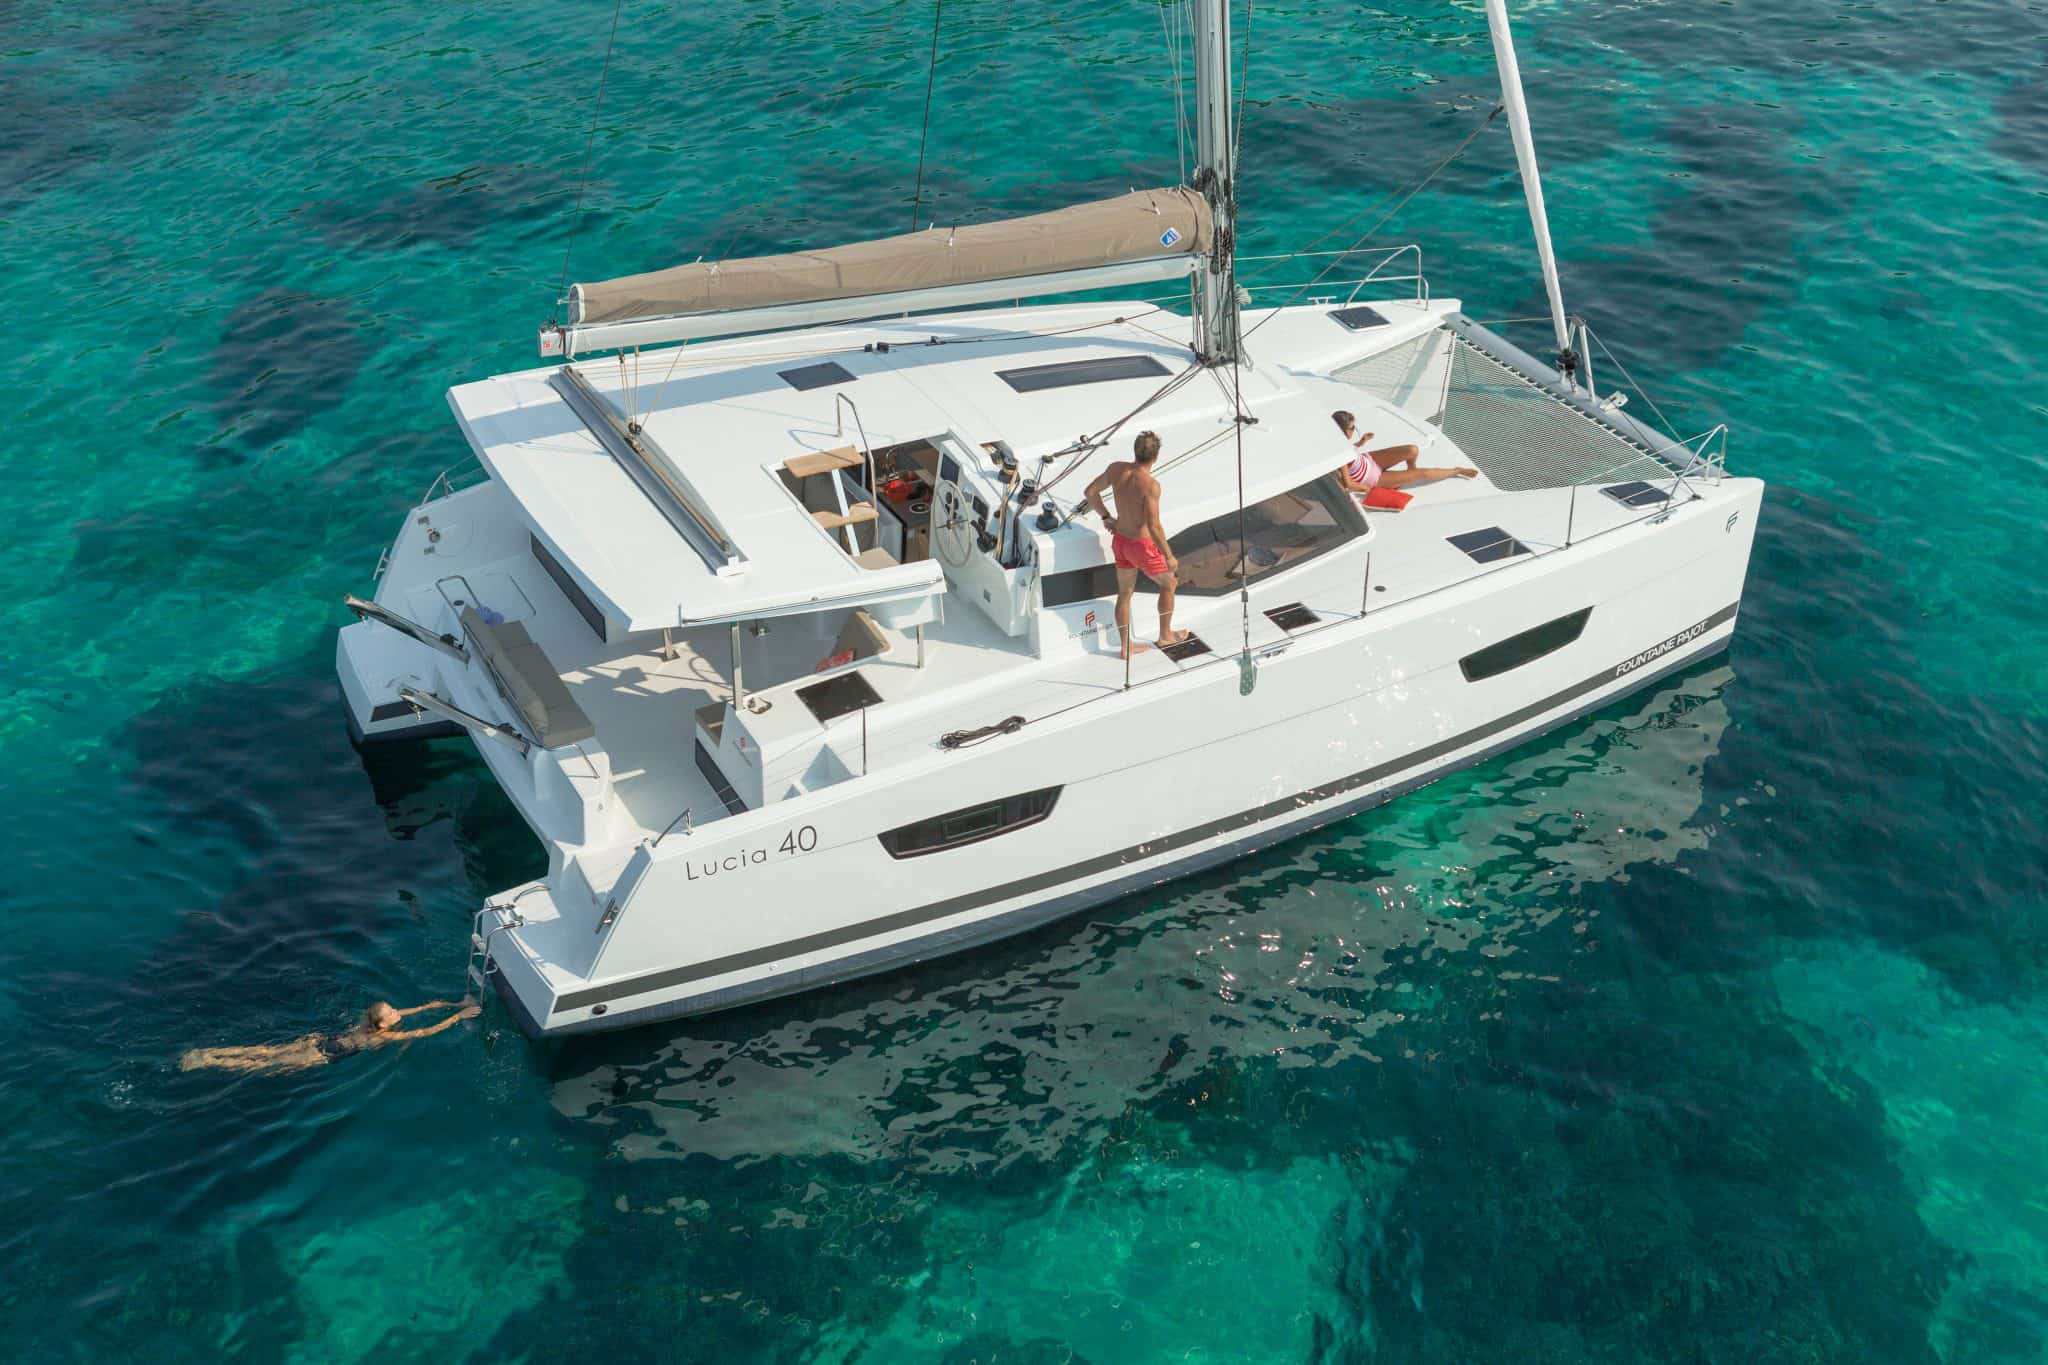 5 Reasons Chartering a Yacht is The Most Memorable Vacation